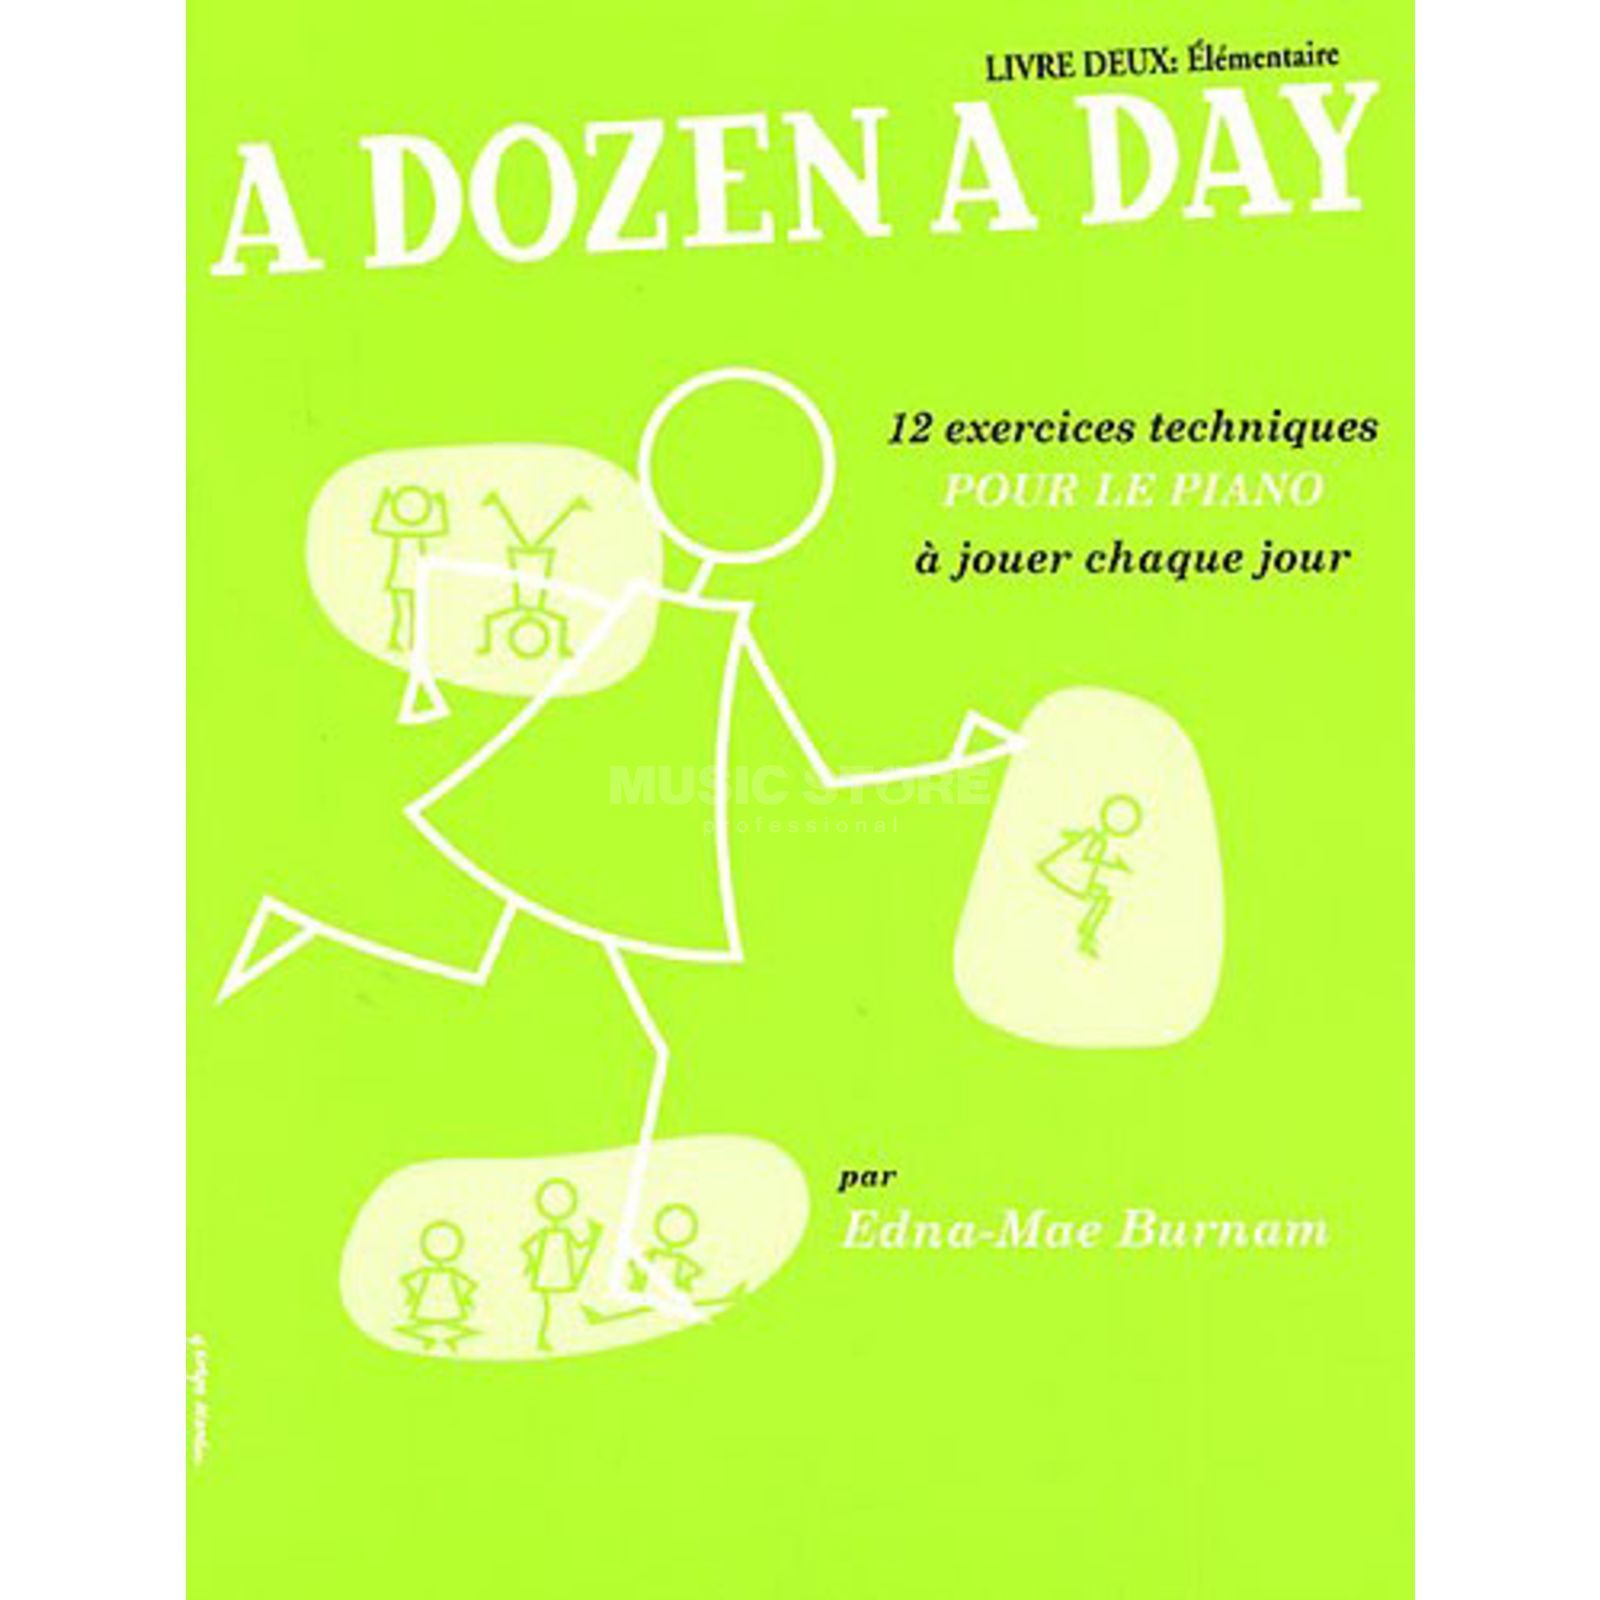 Editions Musicales Francaises A Dozen A Day: Livre 2 Elementaire, French, Piano Produktbild